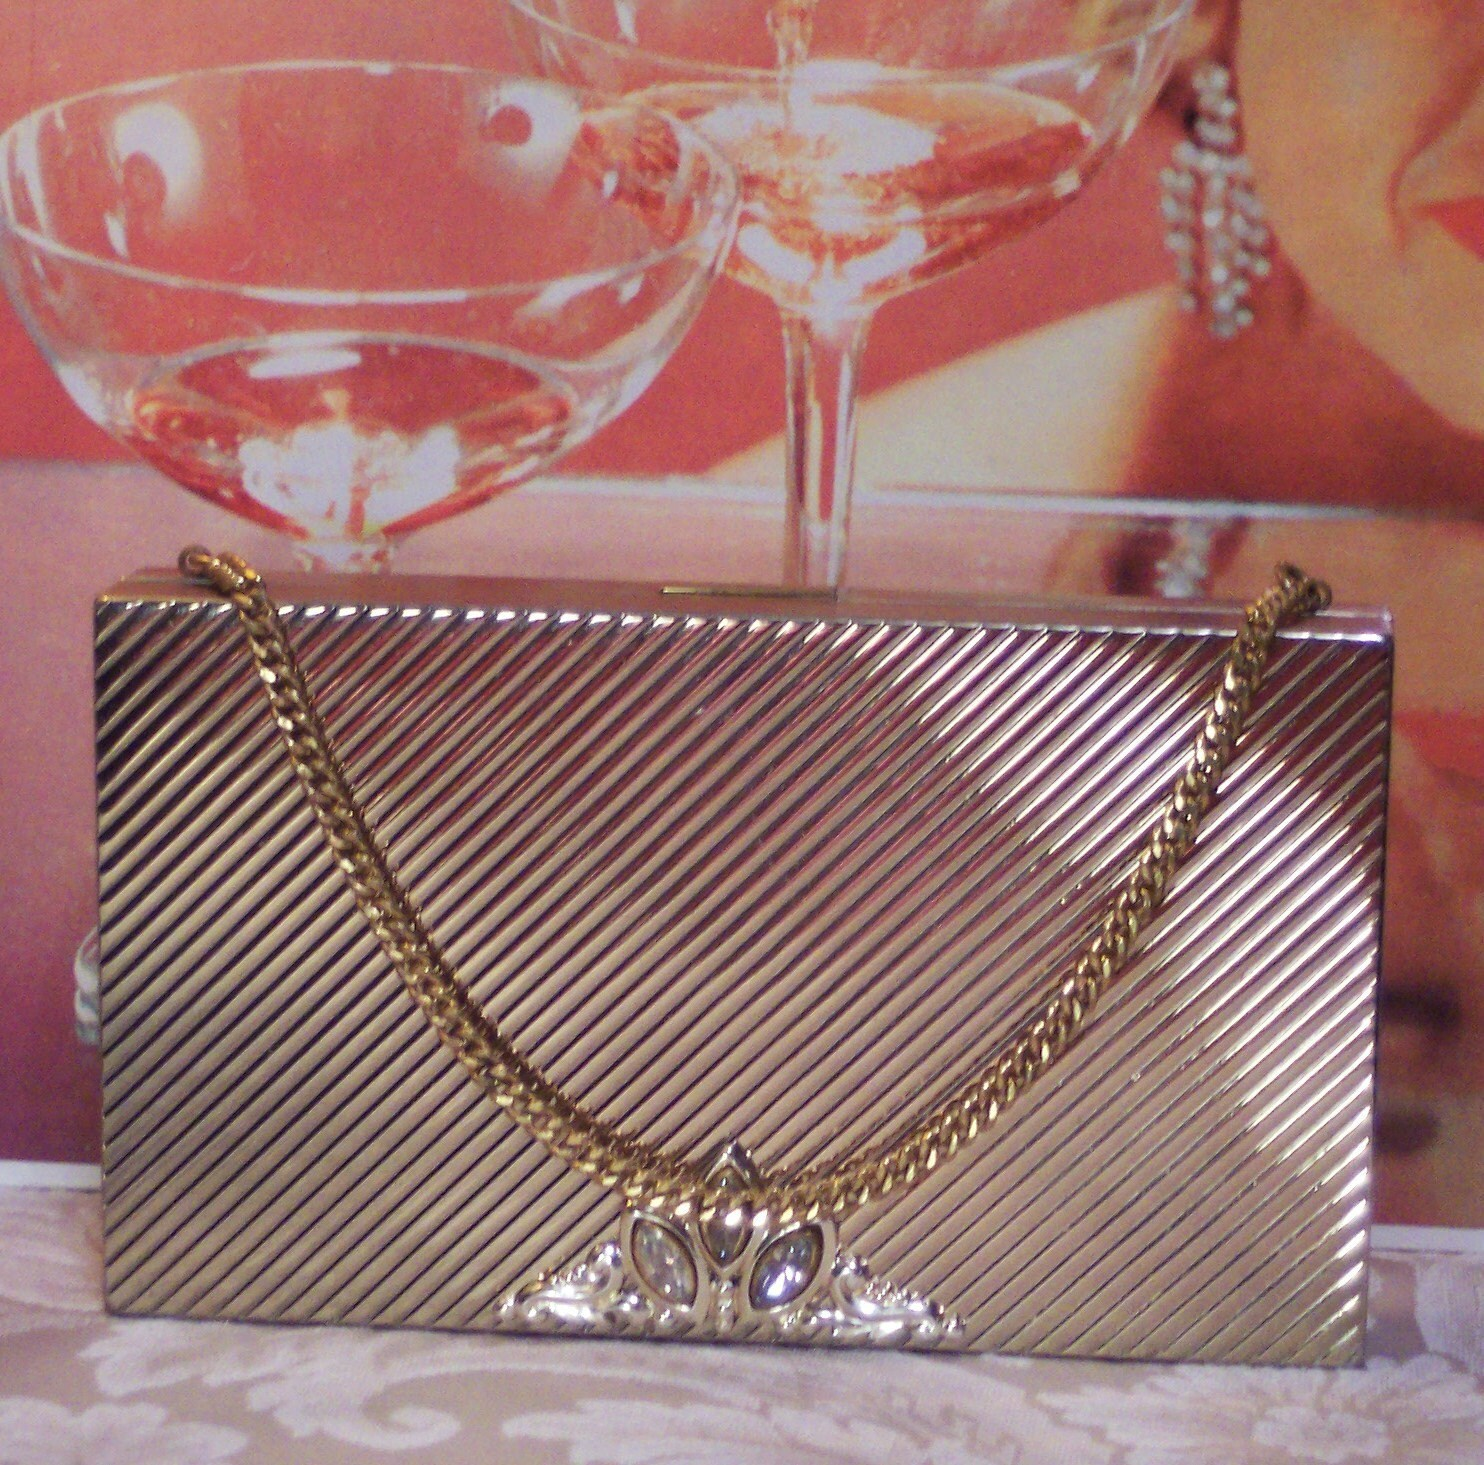 ART DECO VINTAGE EVANS MINAUDIERE LIPSTICK POWDER CIGARETTE EVENING BAG